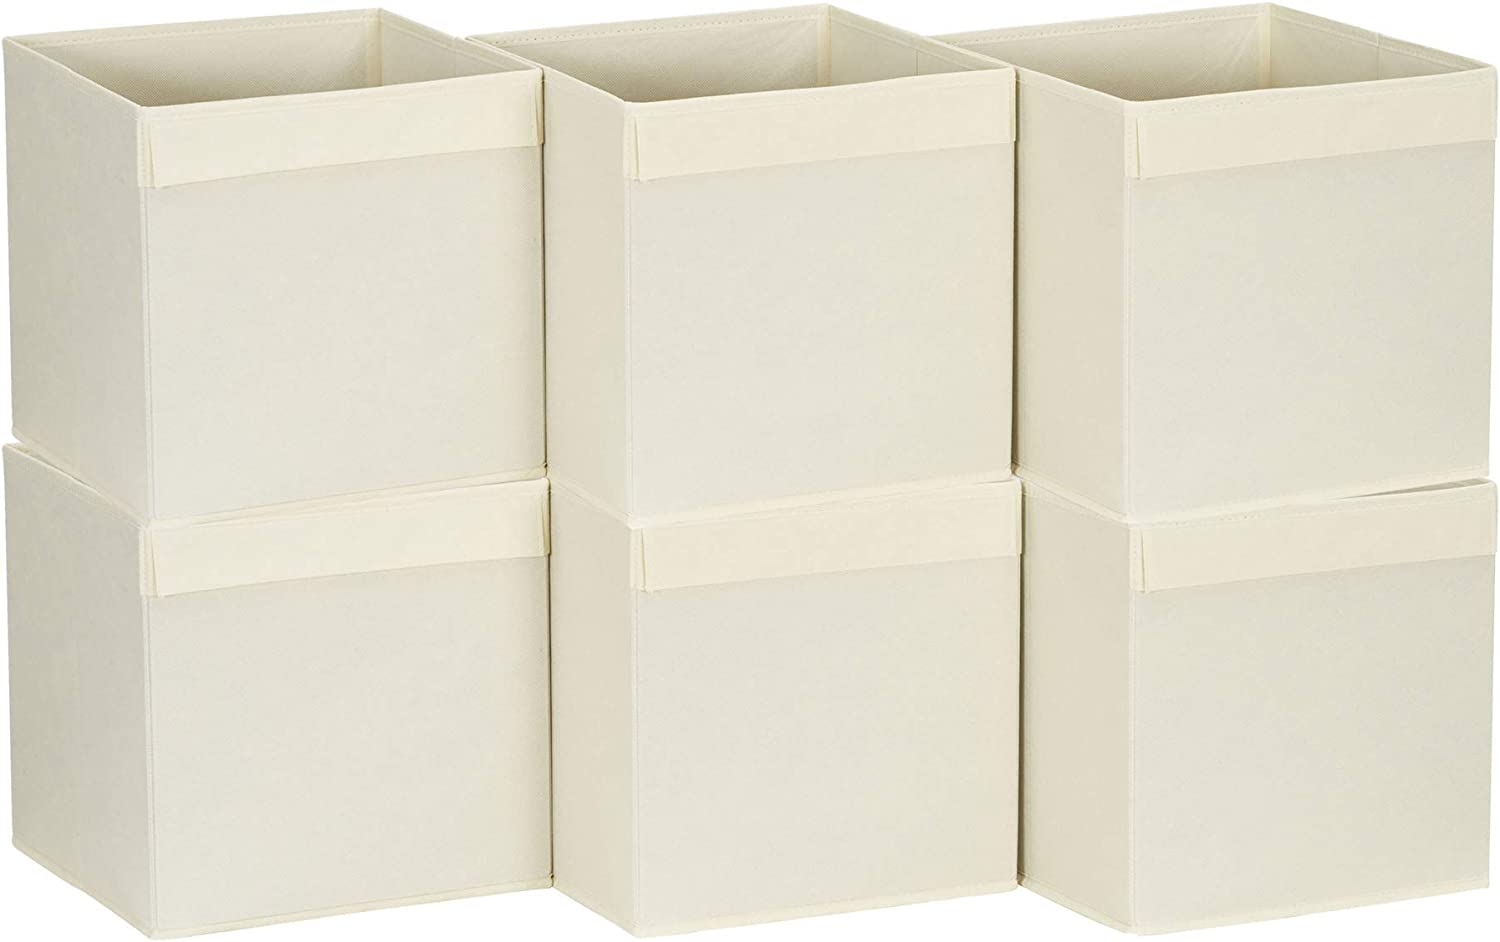 Household Essentials 88-1 Foldable Fabric Storage Bins | Set of 6 Cubby Cubes Beige, 6.4 lbs, Natural/Flap Handle